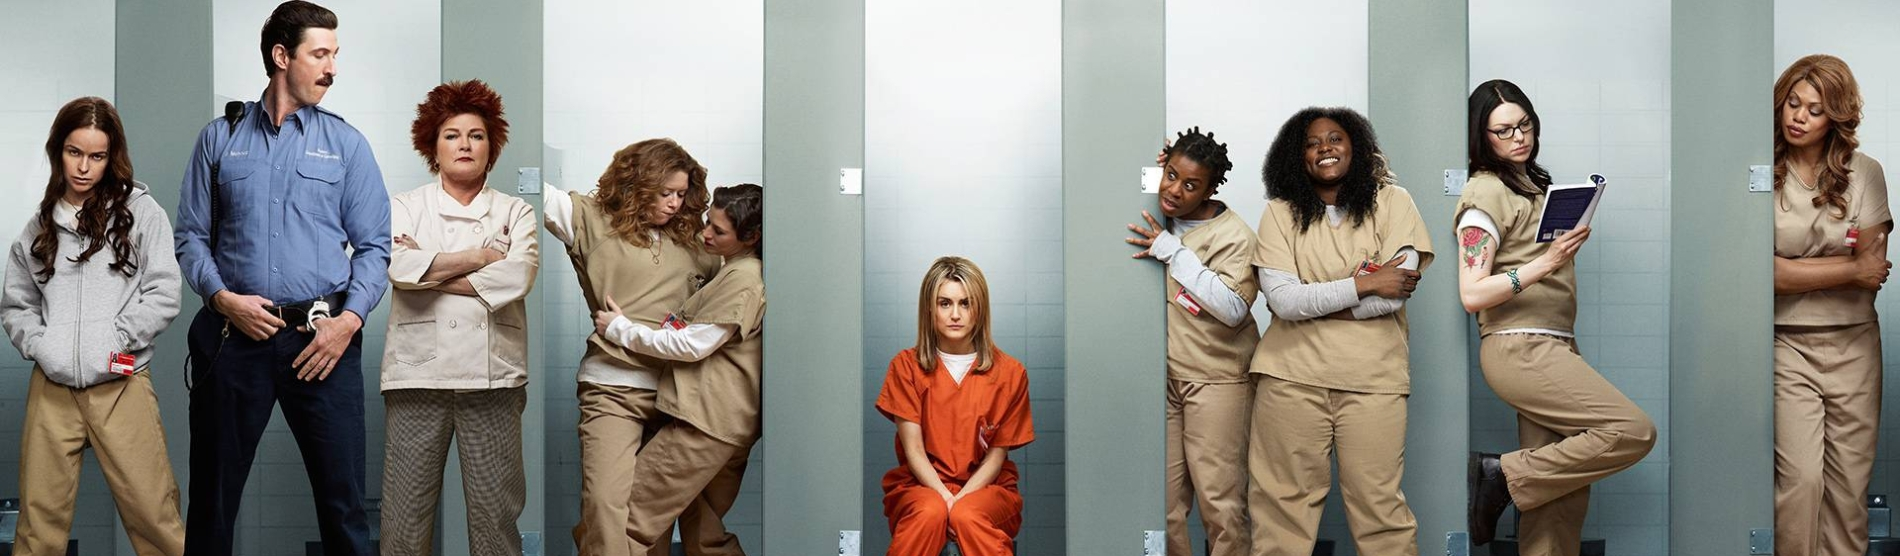 oitnb Feature Image